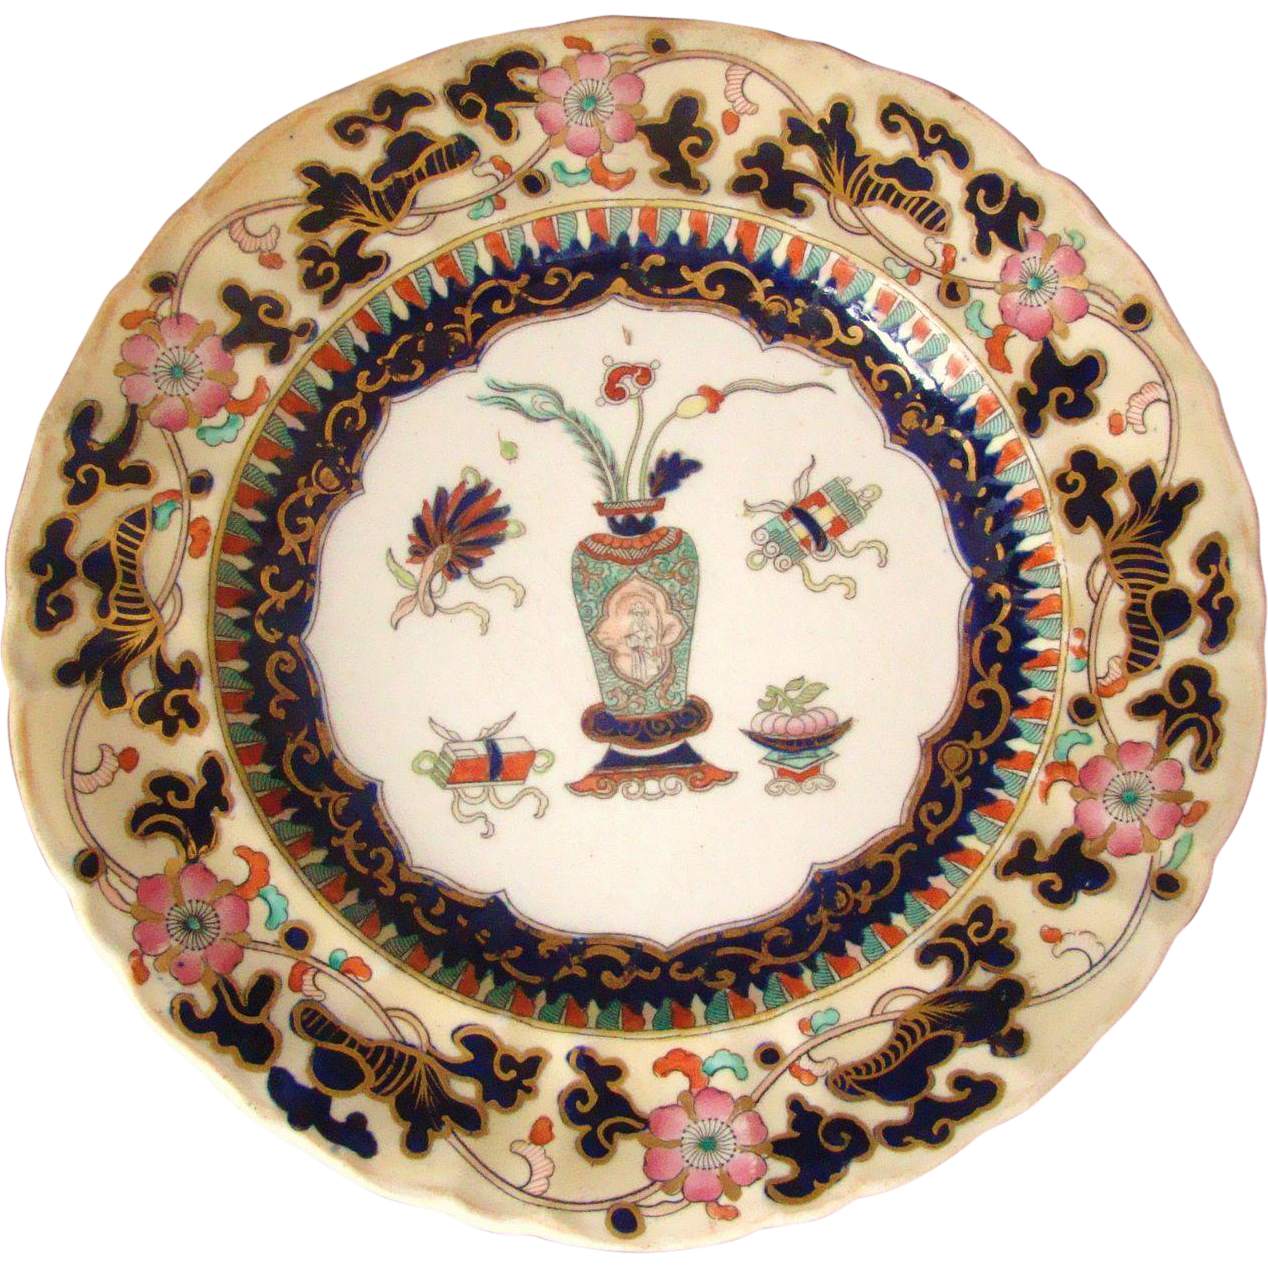 Antique Hand Painted Mason Ironstone Plate Chinoiserie Chinese Vase Pattern 1840